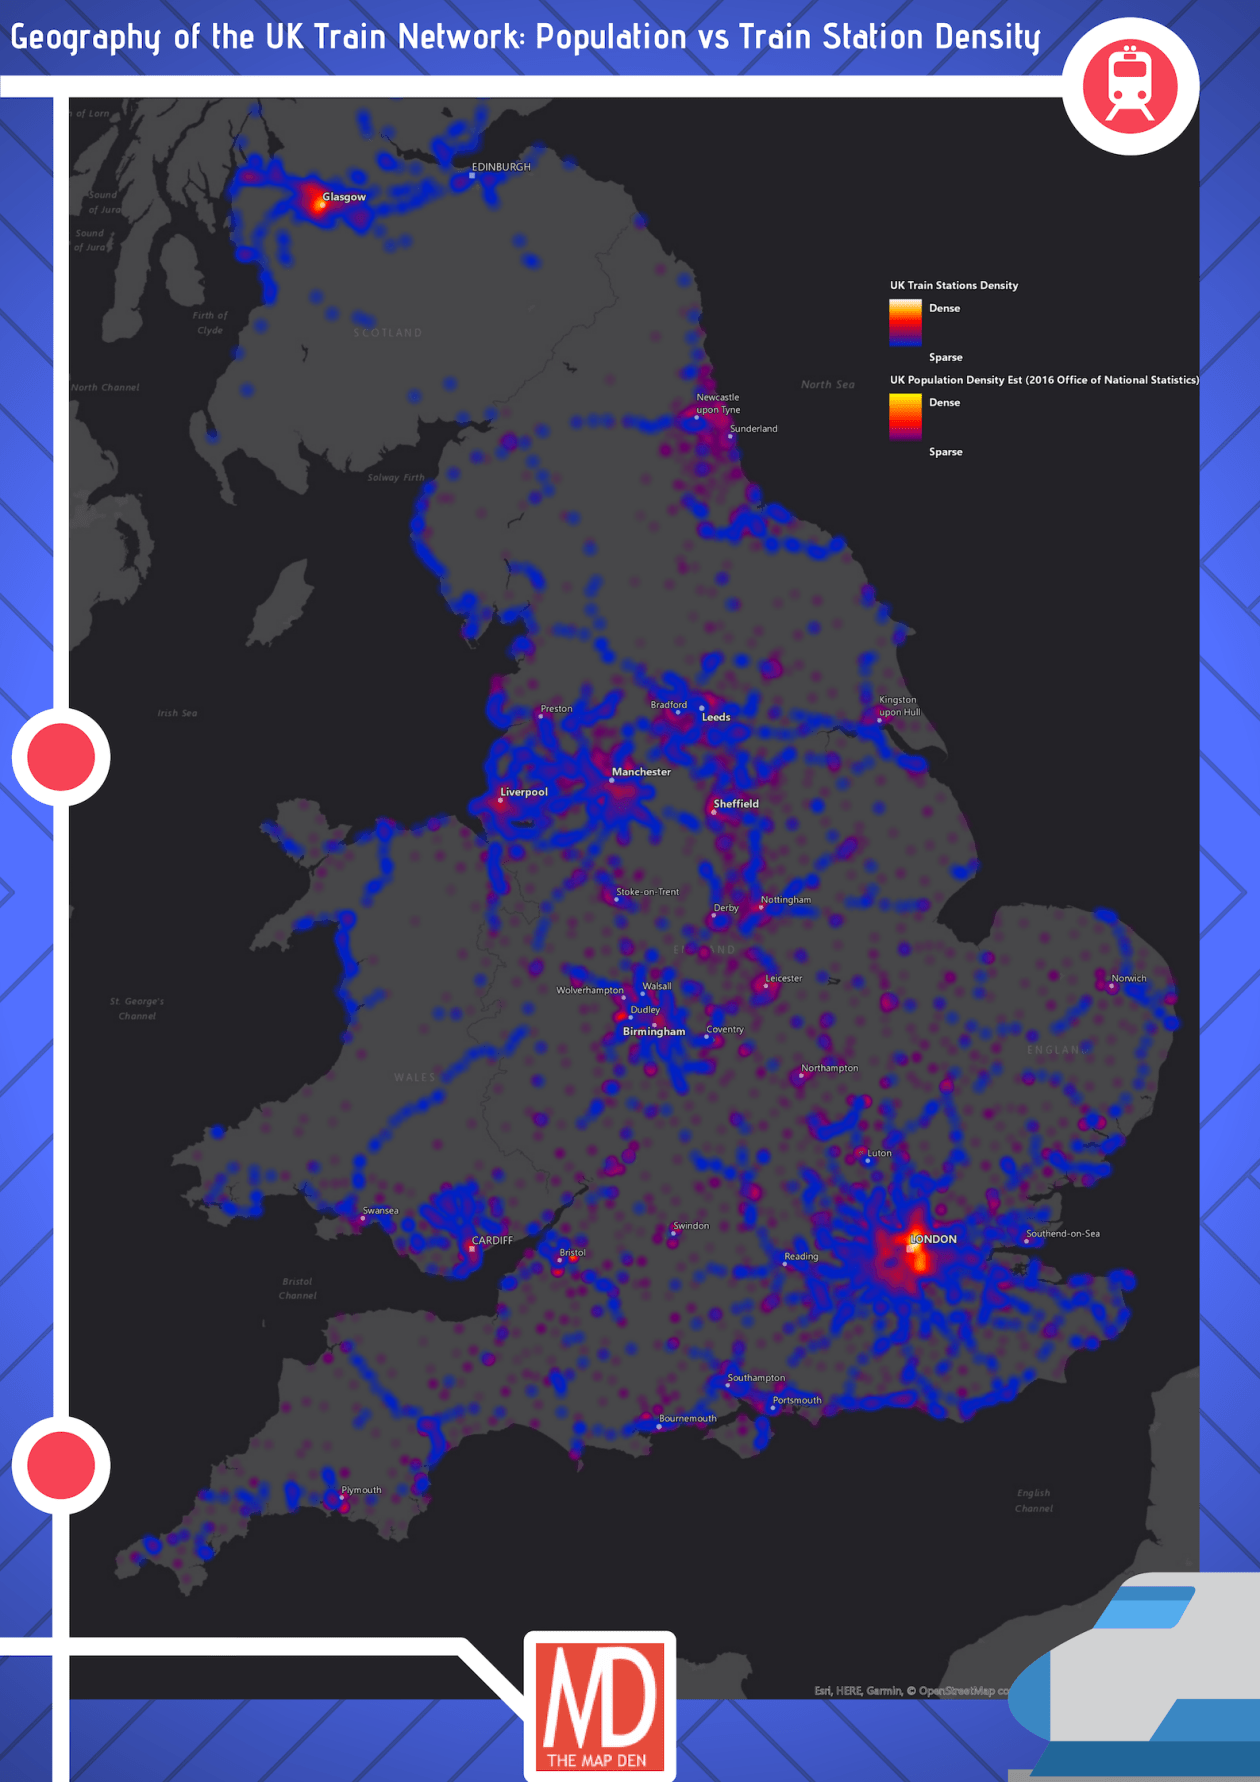 UK Train station density vs Population Density